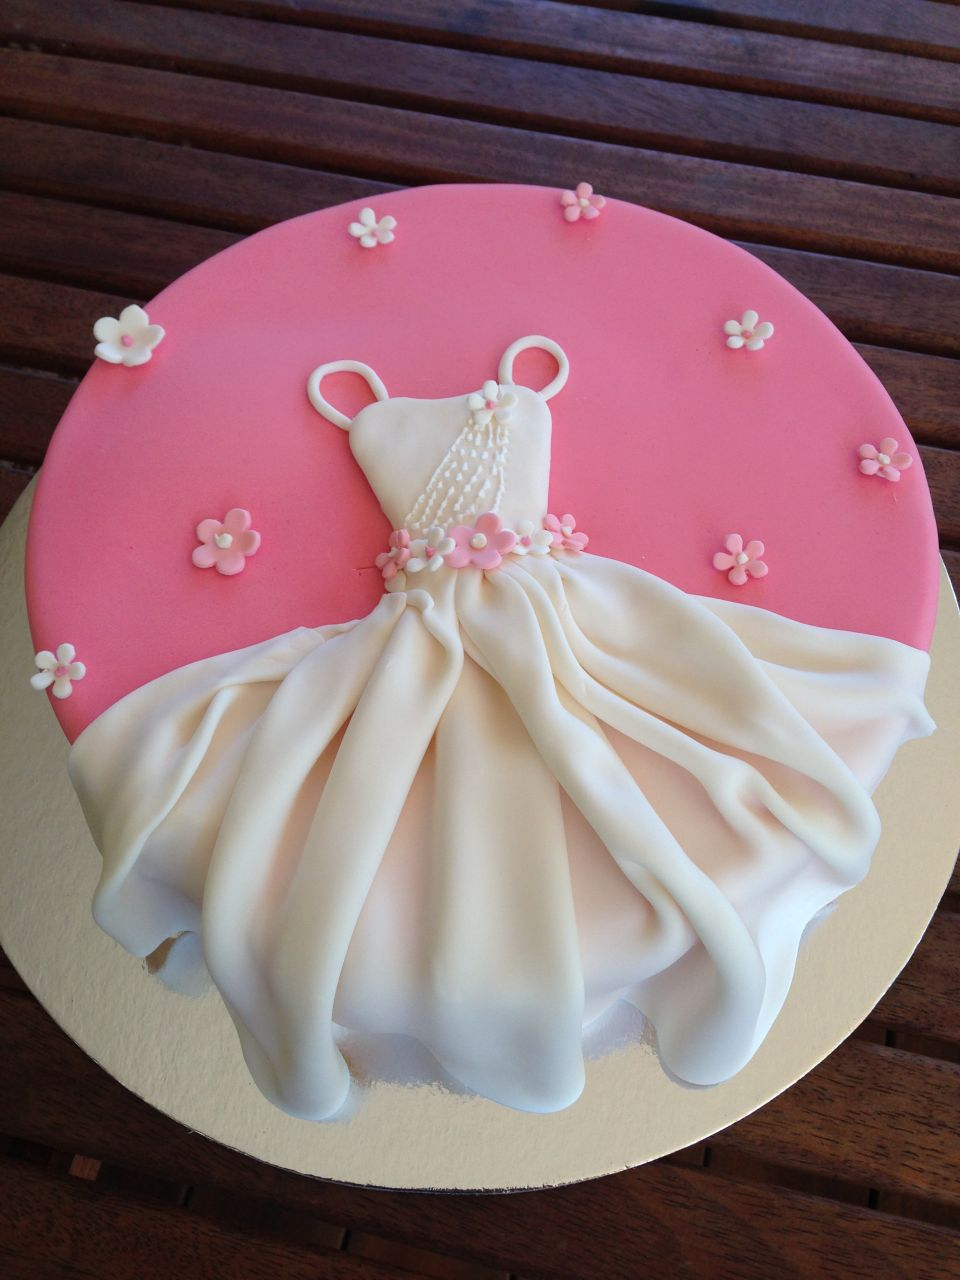 Kitchen Tea Cake Wedding Cakes Birthday Cakes Chocolates North Shore Sydney